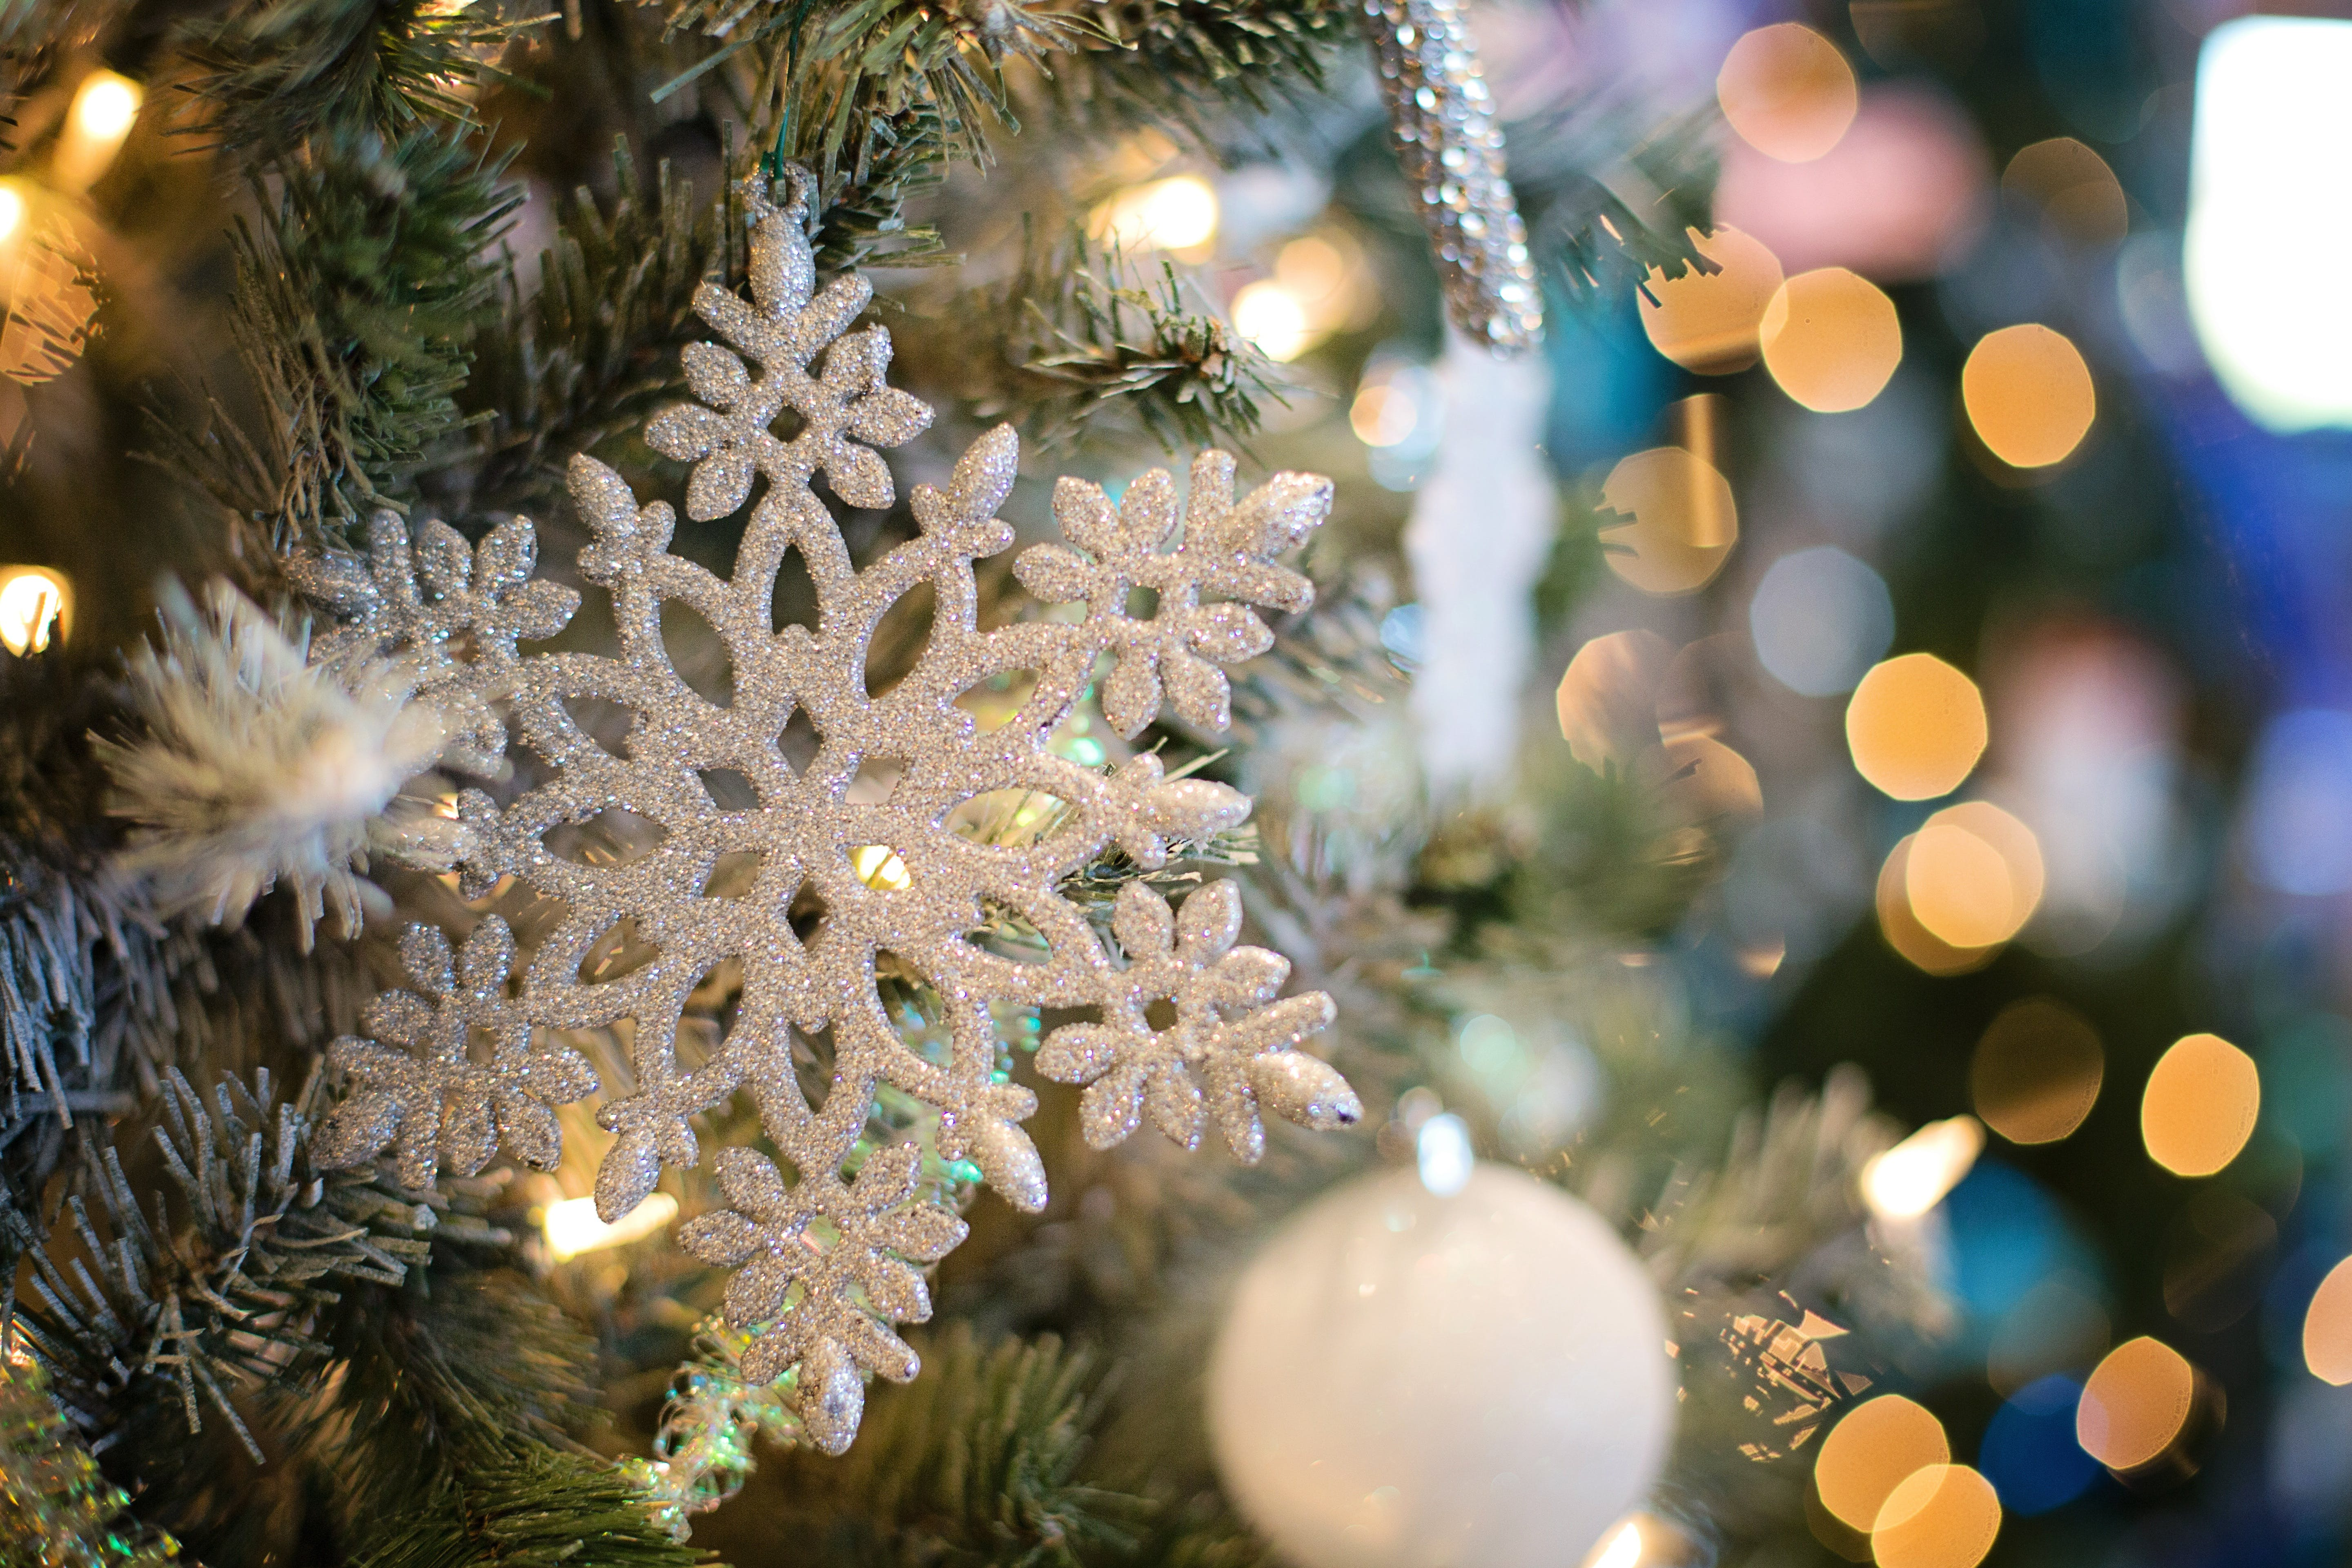 Selective Focus Photography of White Snowflake Decor